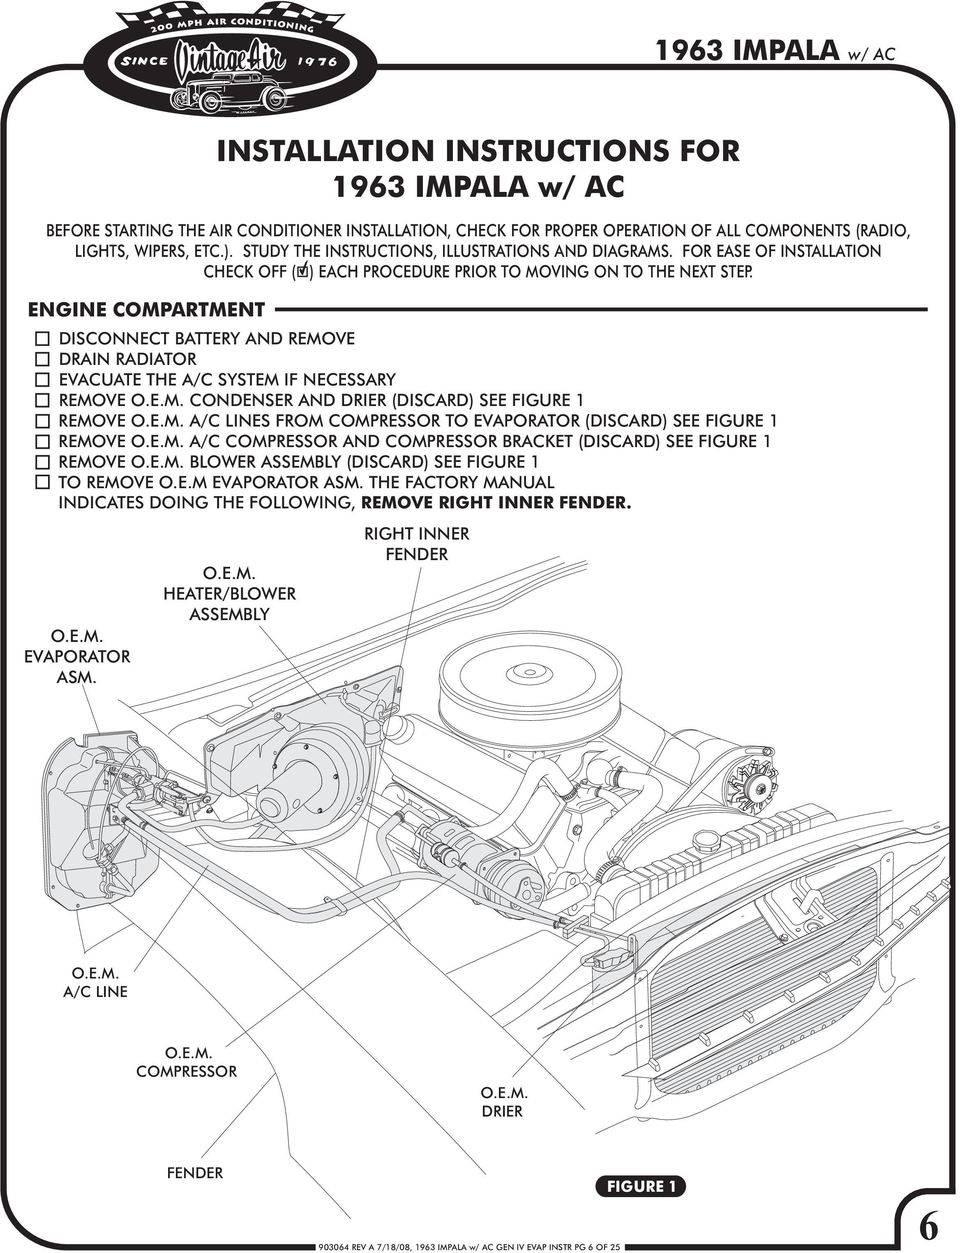 1963 Chevy Impala Gen Iv W Factory Air Pdf F250 7 3l Wiring Diagram Blower Disconnect Battery And Remove Drain Radiator Evacuate The A C System If Necessary Oem Condenser Assembly Installation